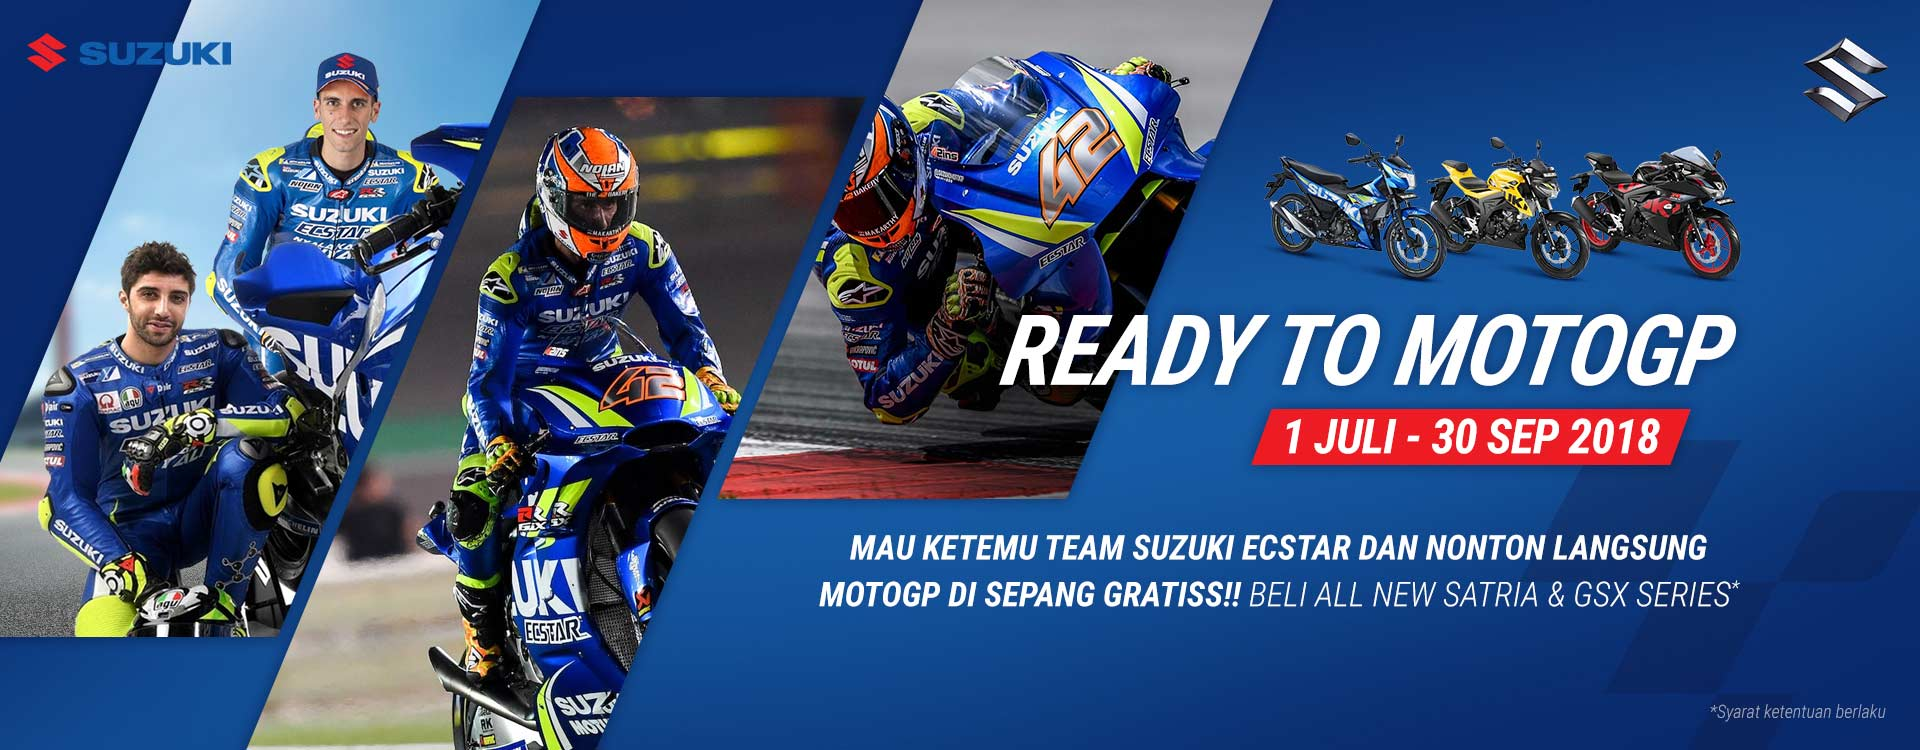 Ready to MotoGP